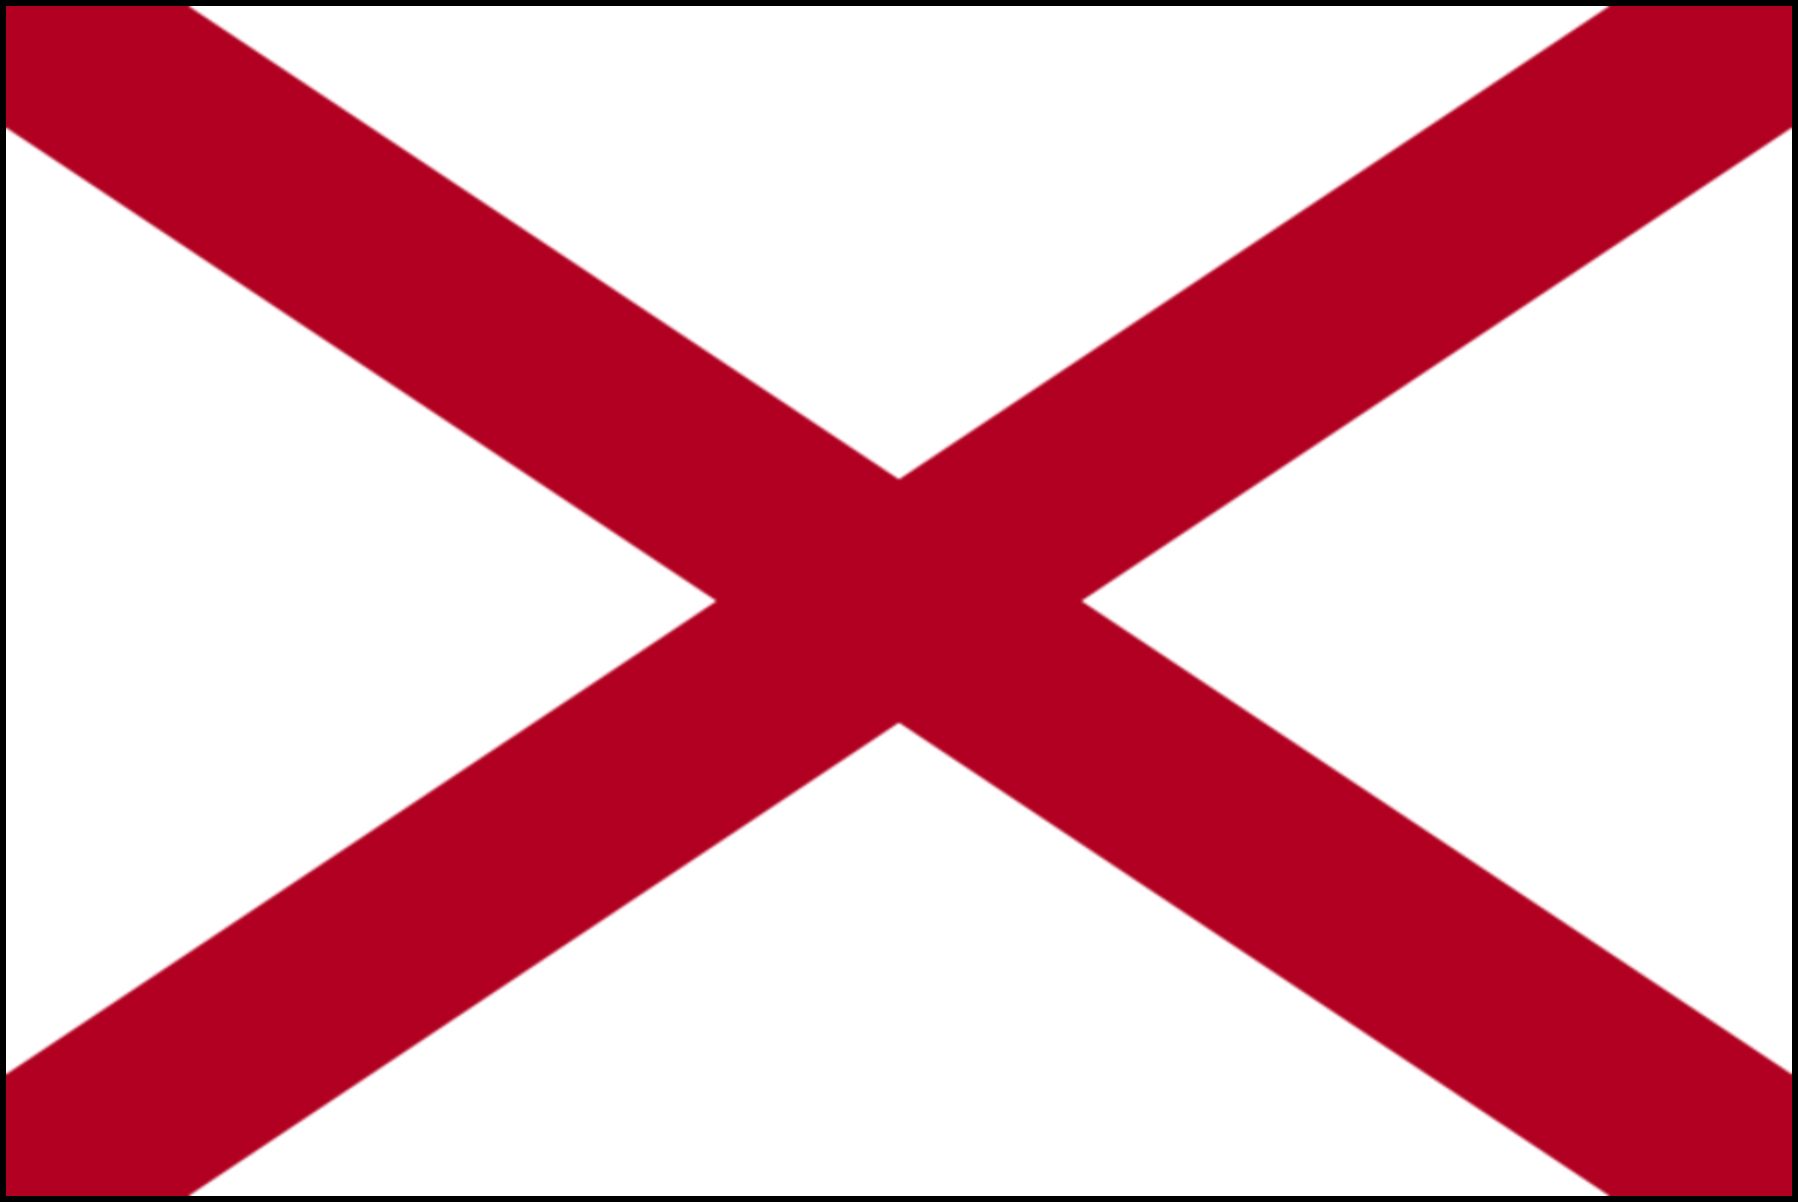 State of Alabama flag